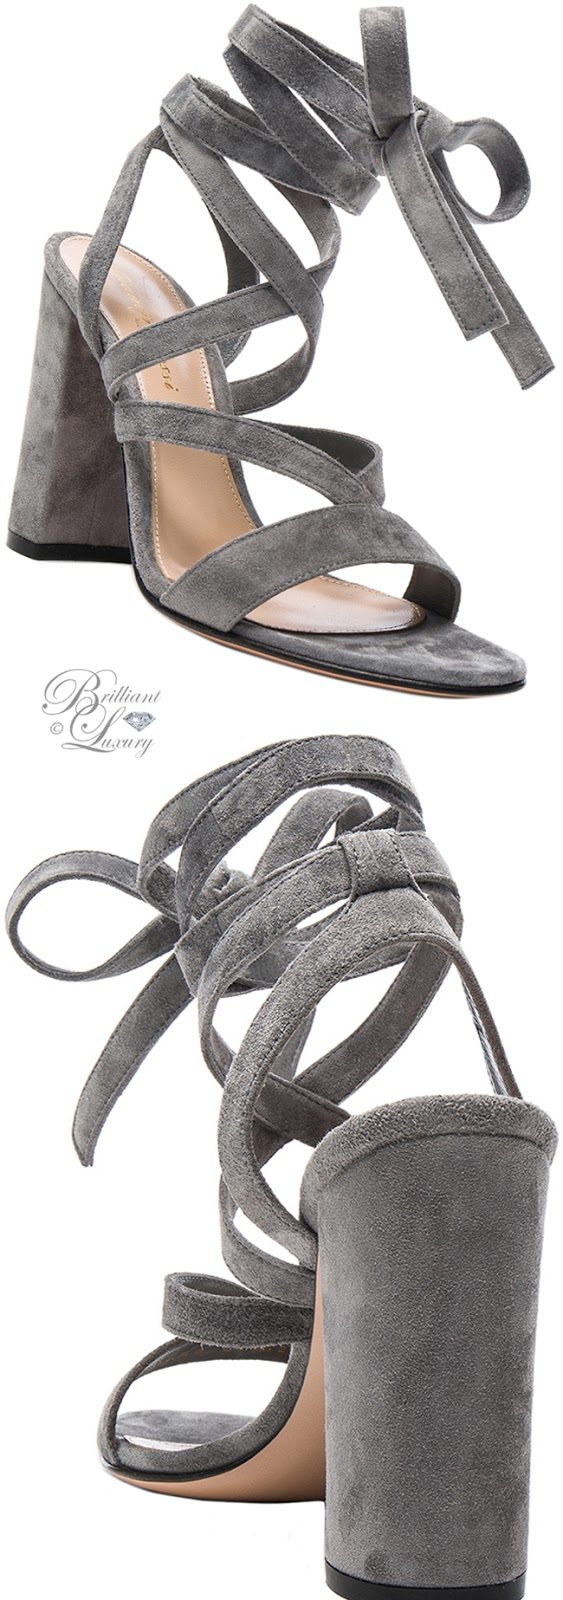 Brilliant Luxury ♦ Gianvito Rossi Suede Janis High Sandals